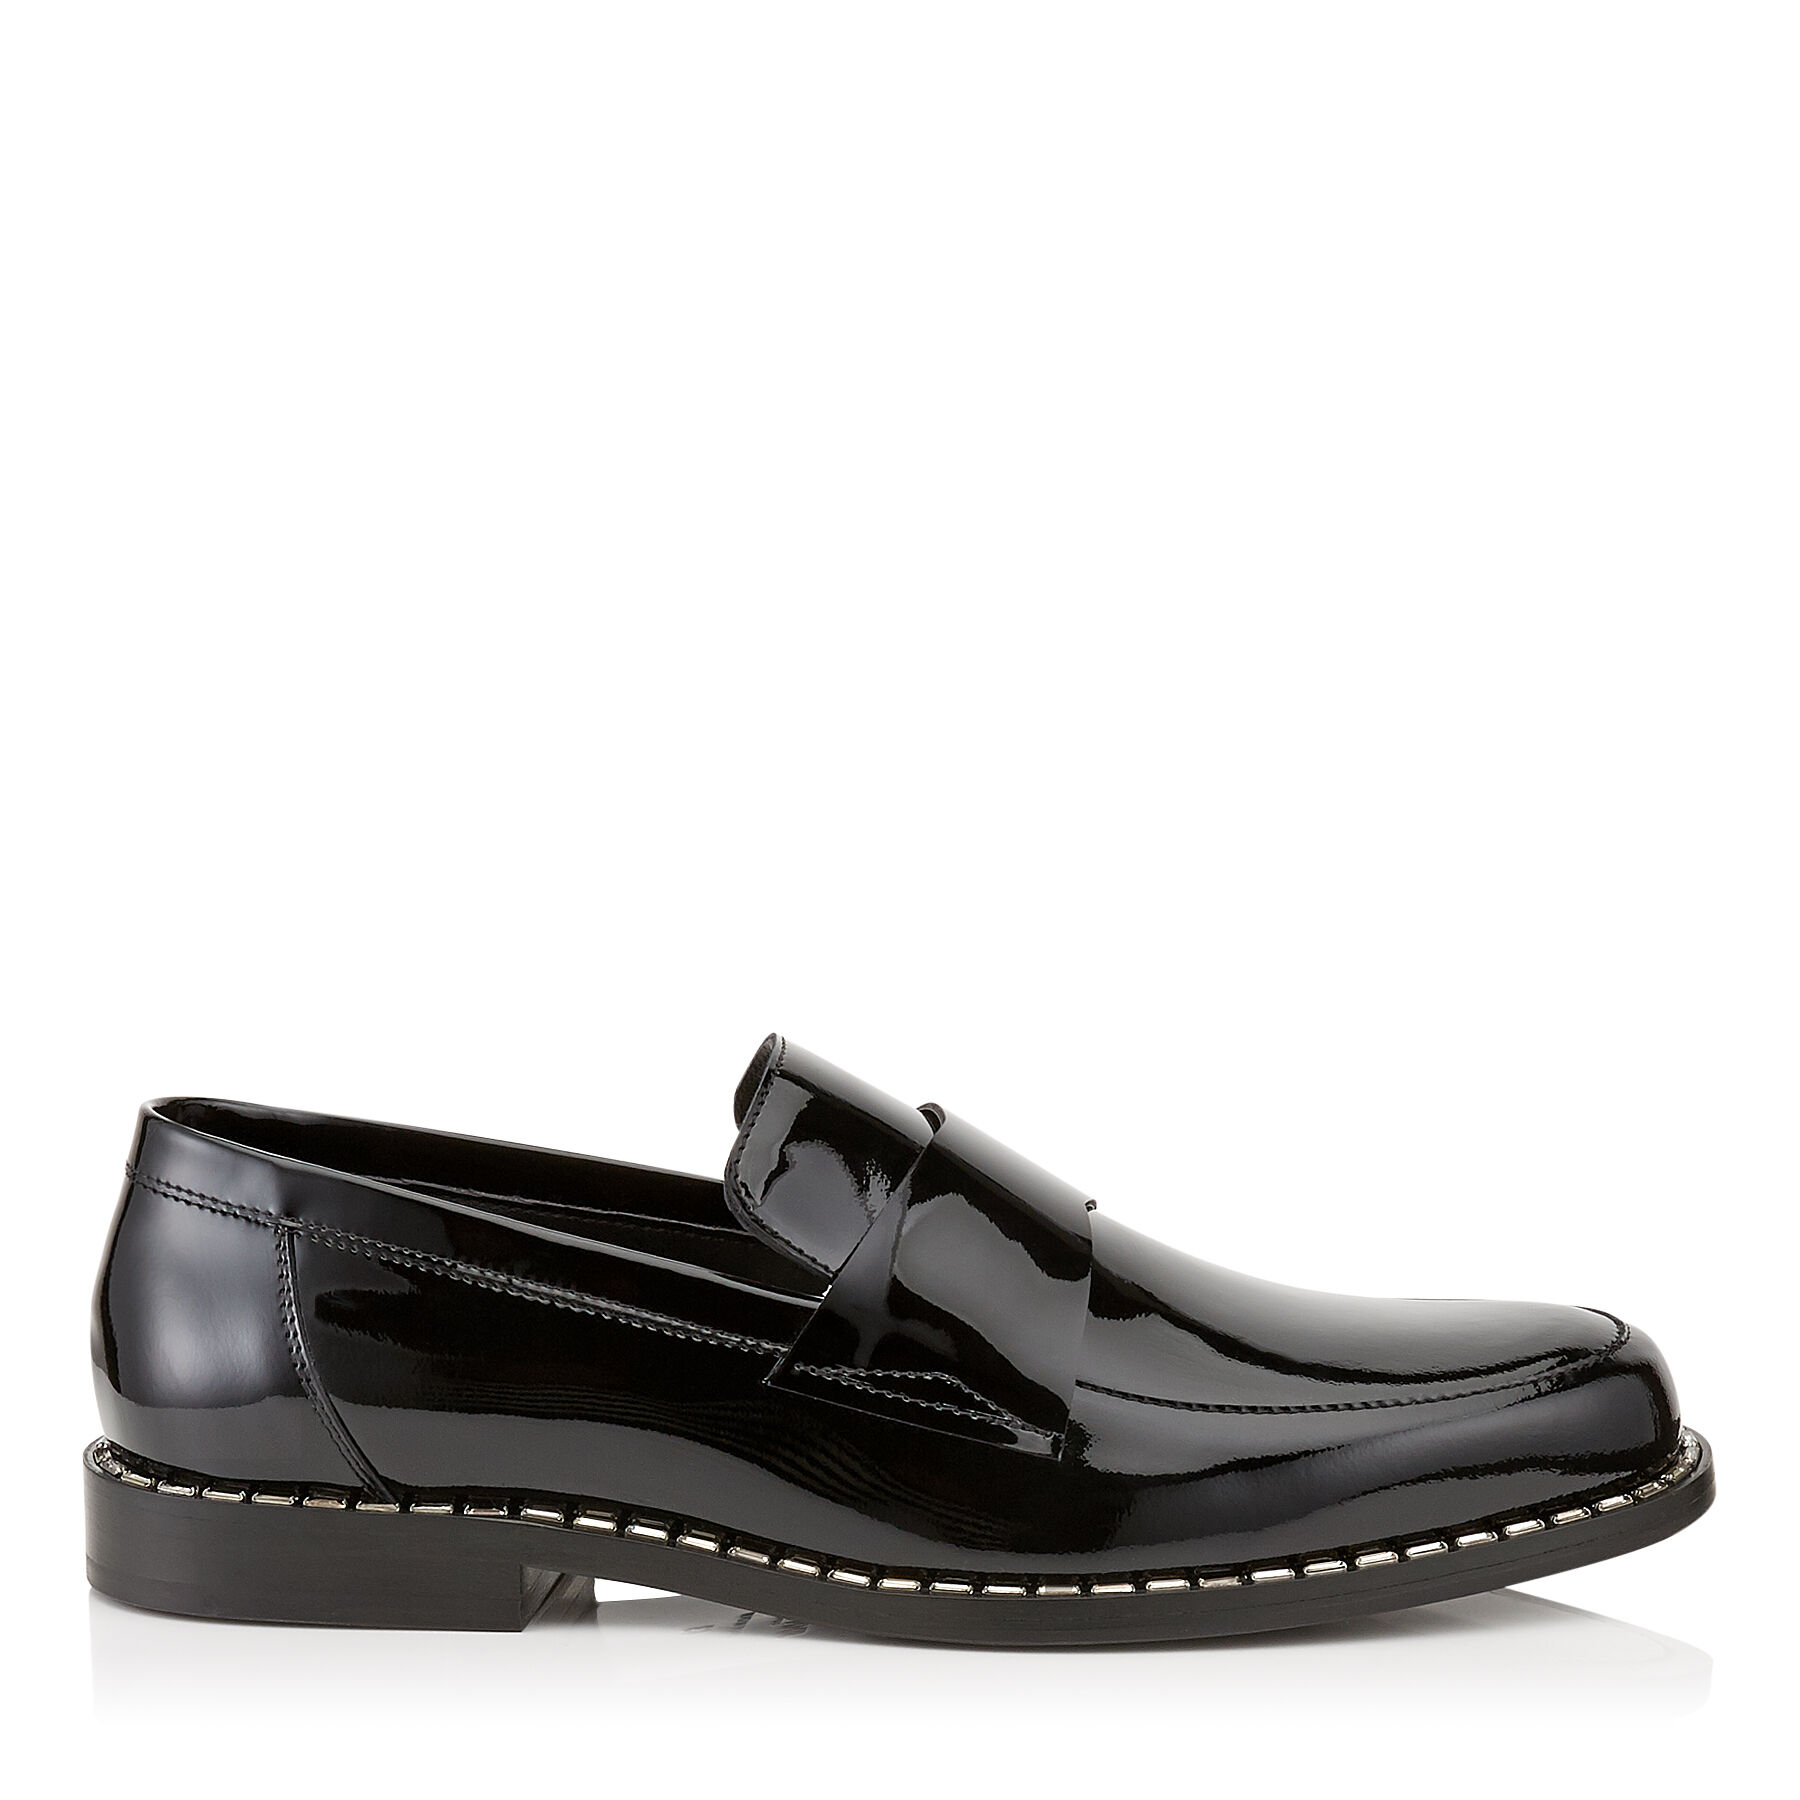 BANE - Black Patent Leather Loafers with Crystal Trim